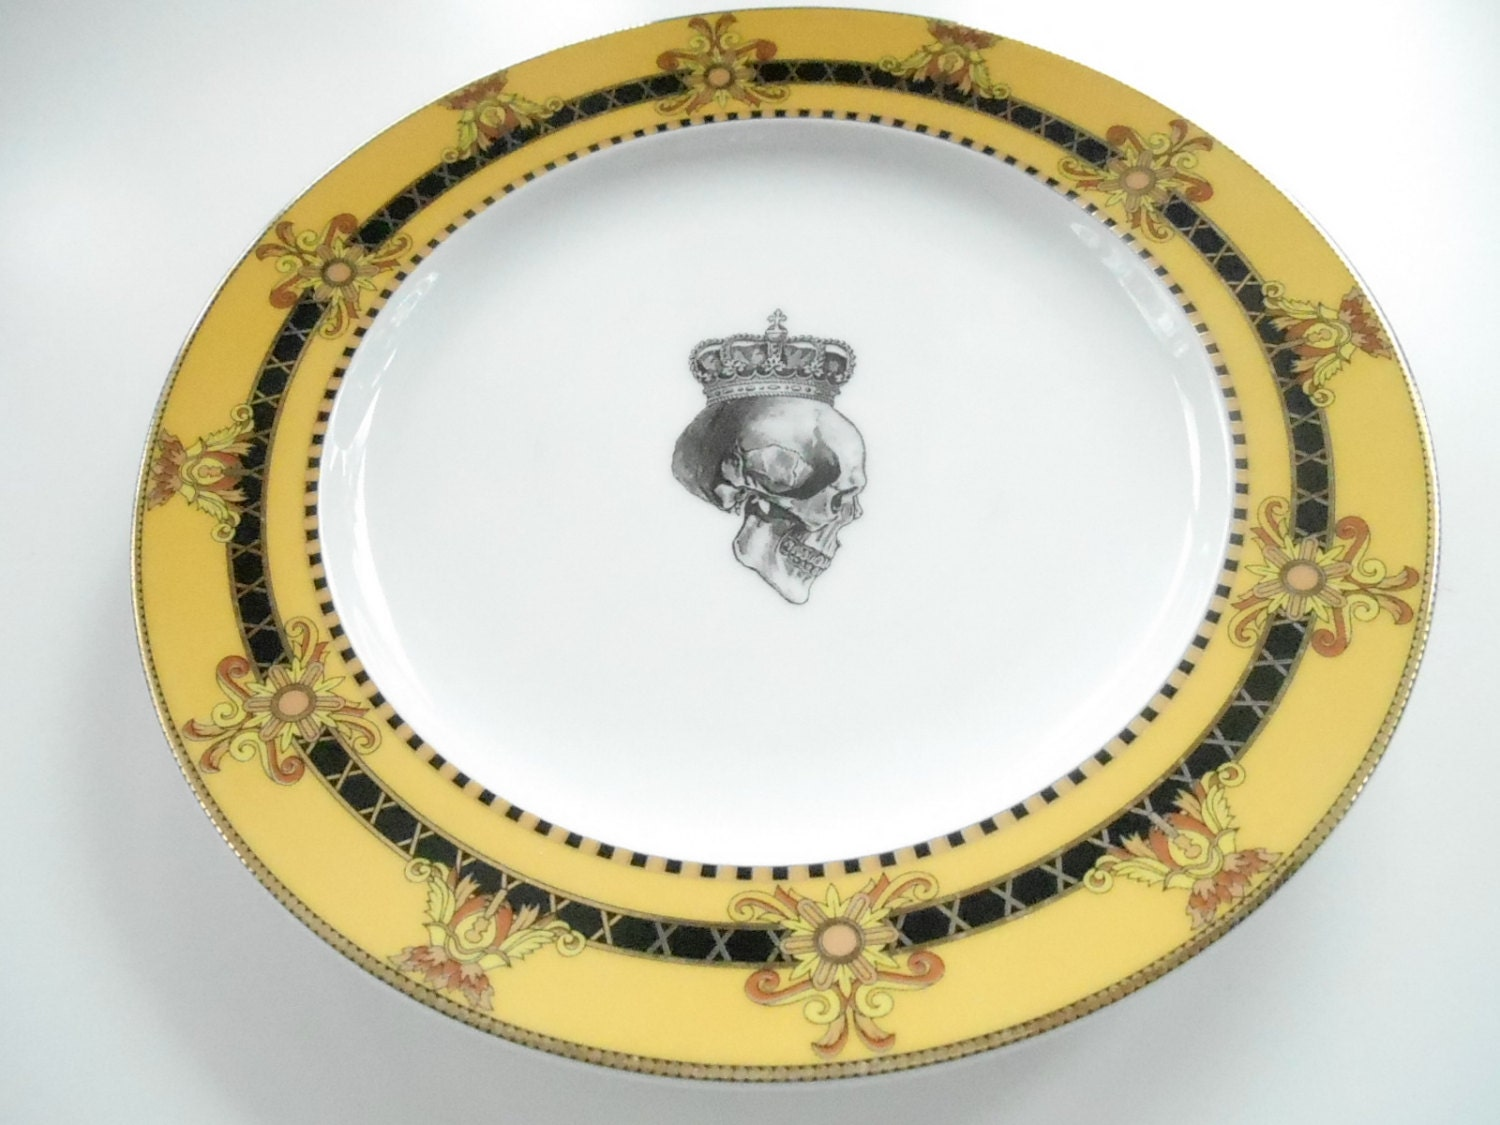 3-piece Yellow /Gold Skull Dinnerware Set, PAYMENT PLANS on